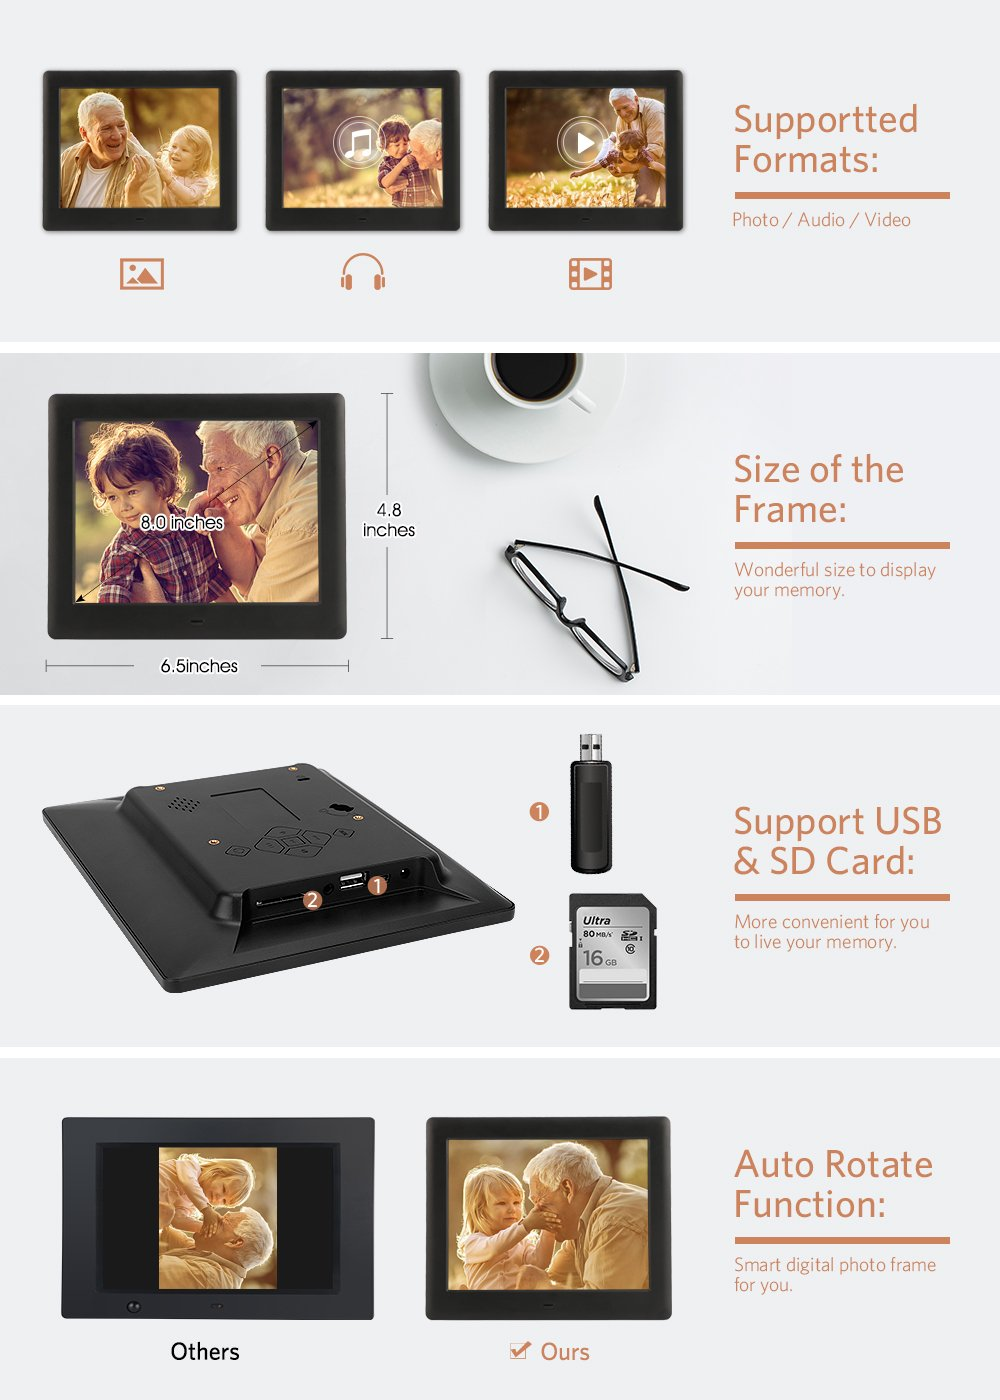 Amazon.com: DBPOWER HD Digital Photo Frame IPS LCD Screen with Auto ...